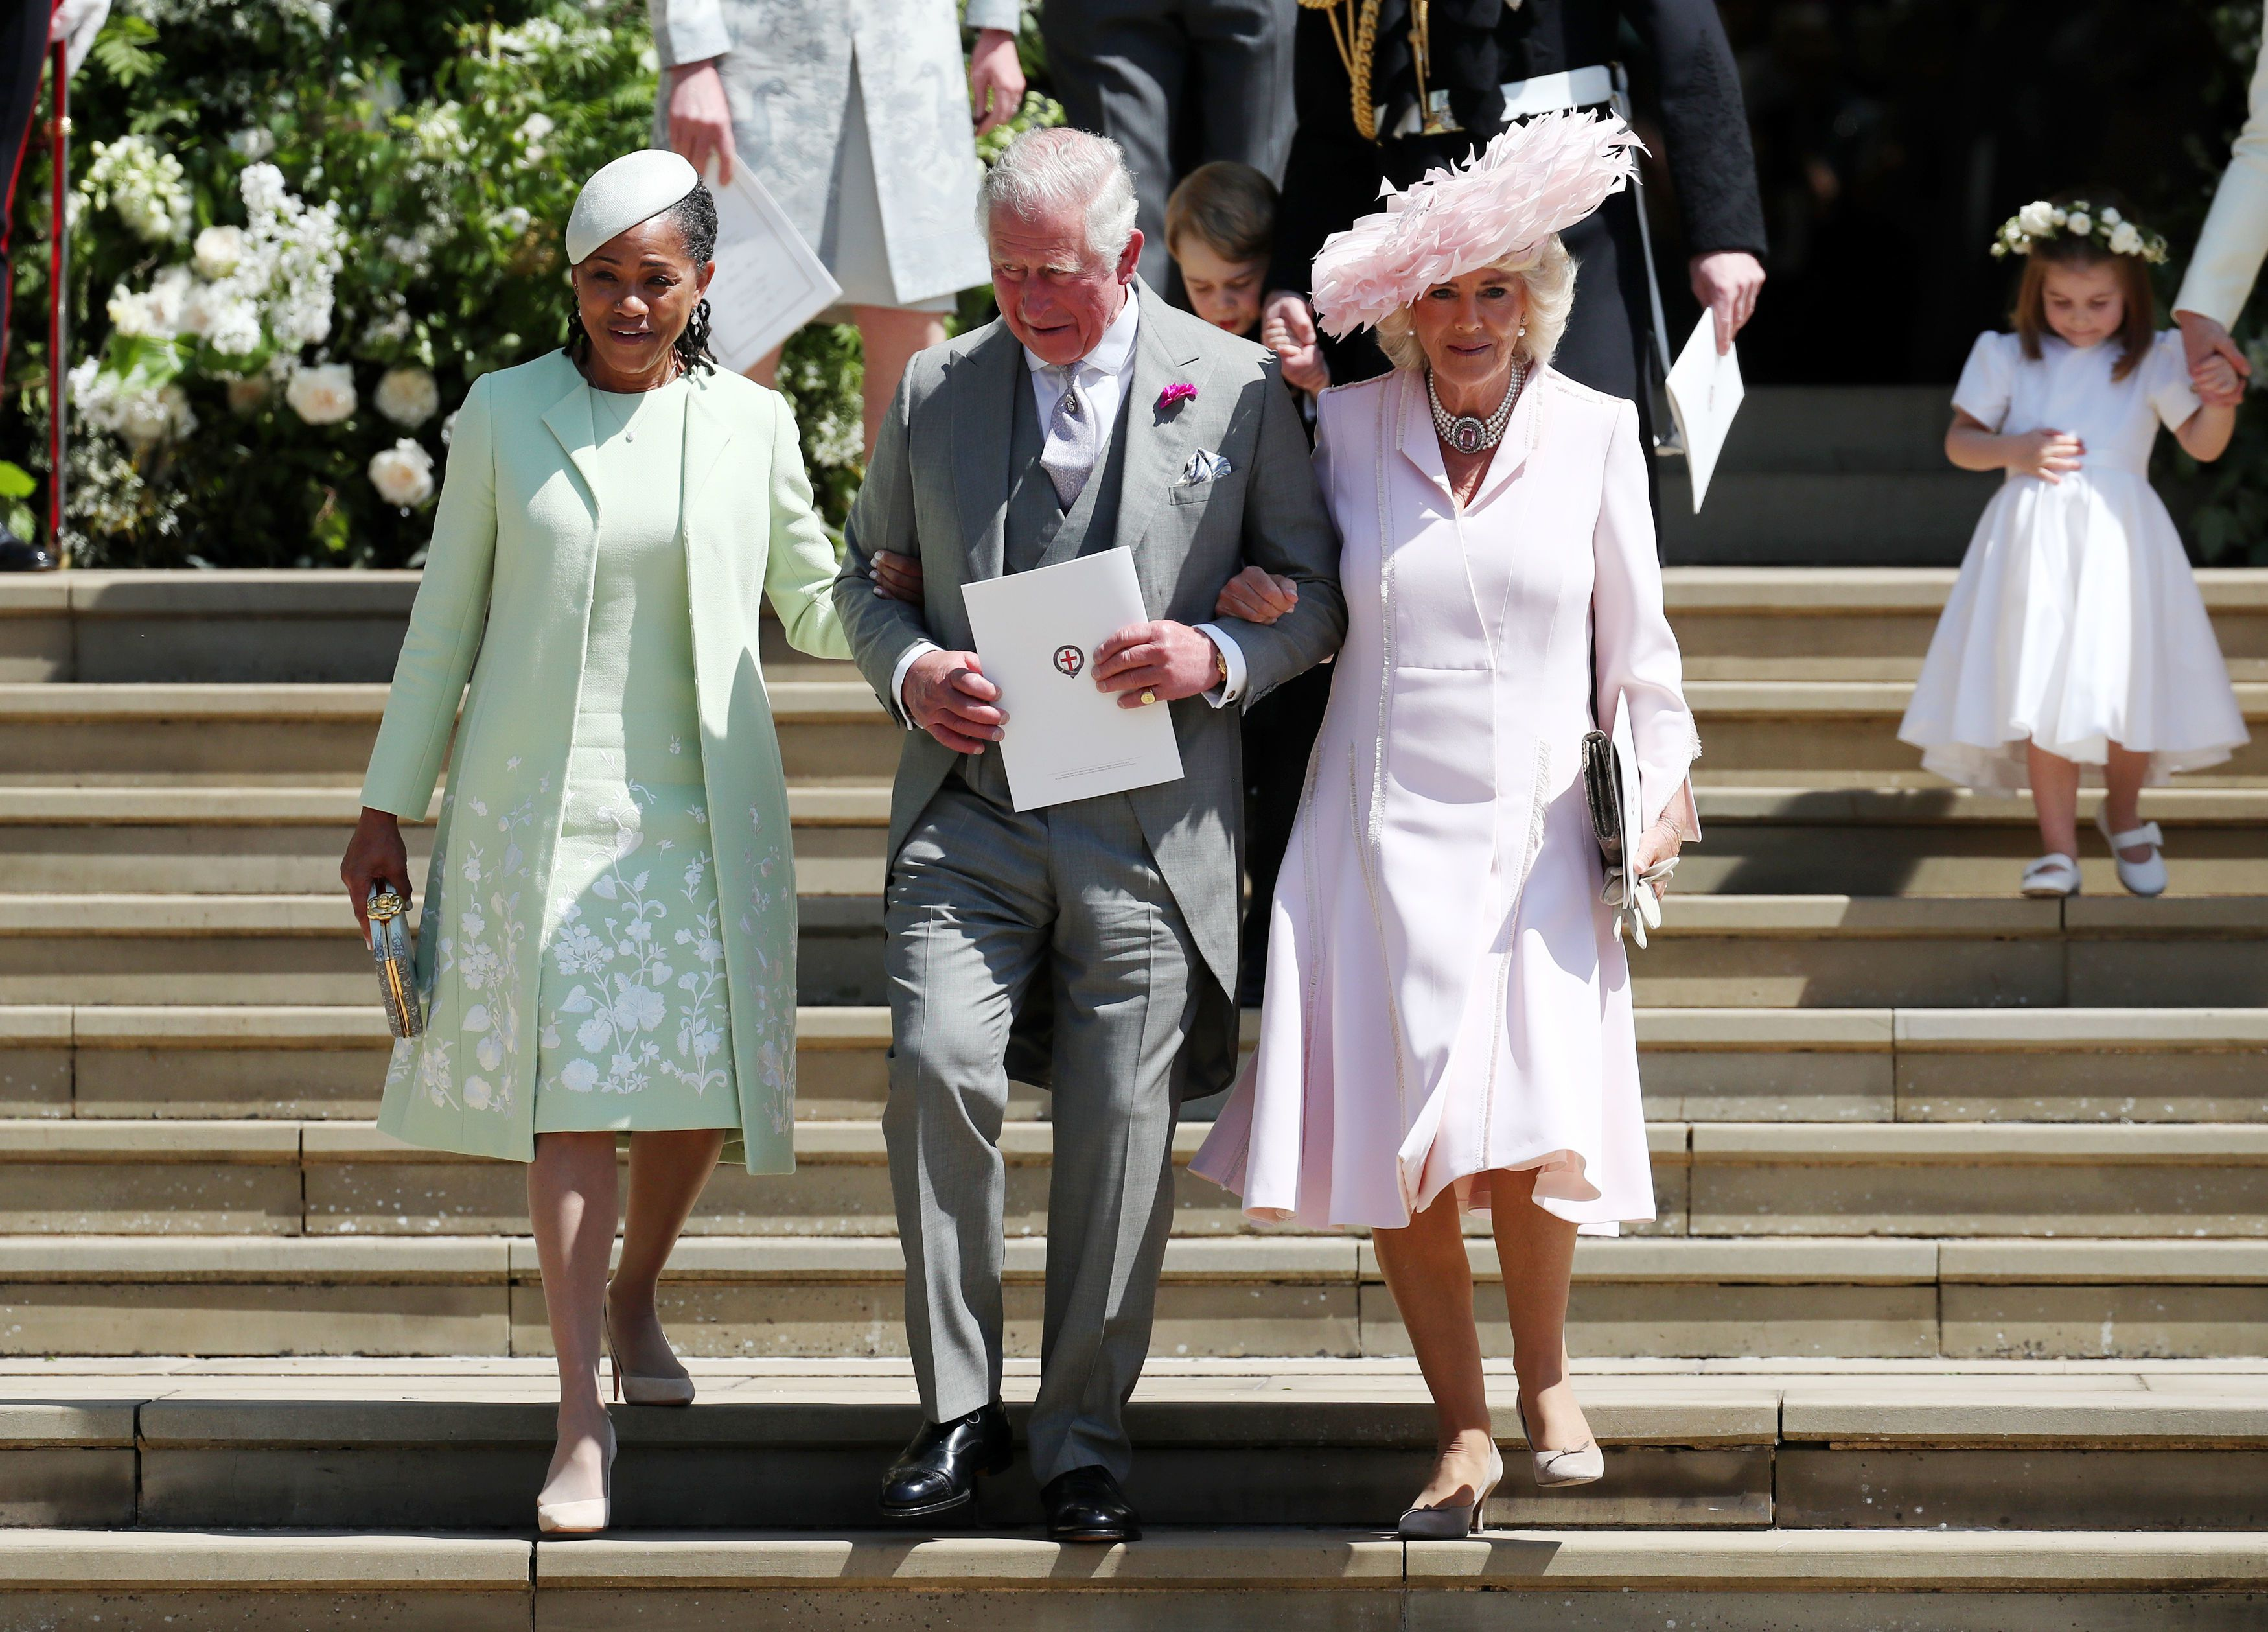 Doria Ragland, mother of the bride, Prince Charles, Prince of Wales and Camilla, Duchess of Cornwall